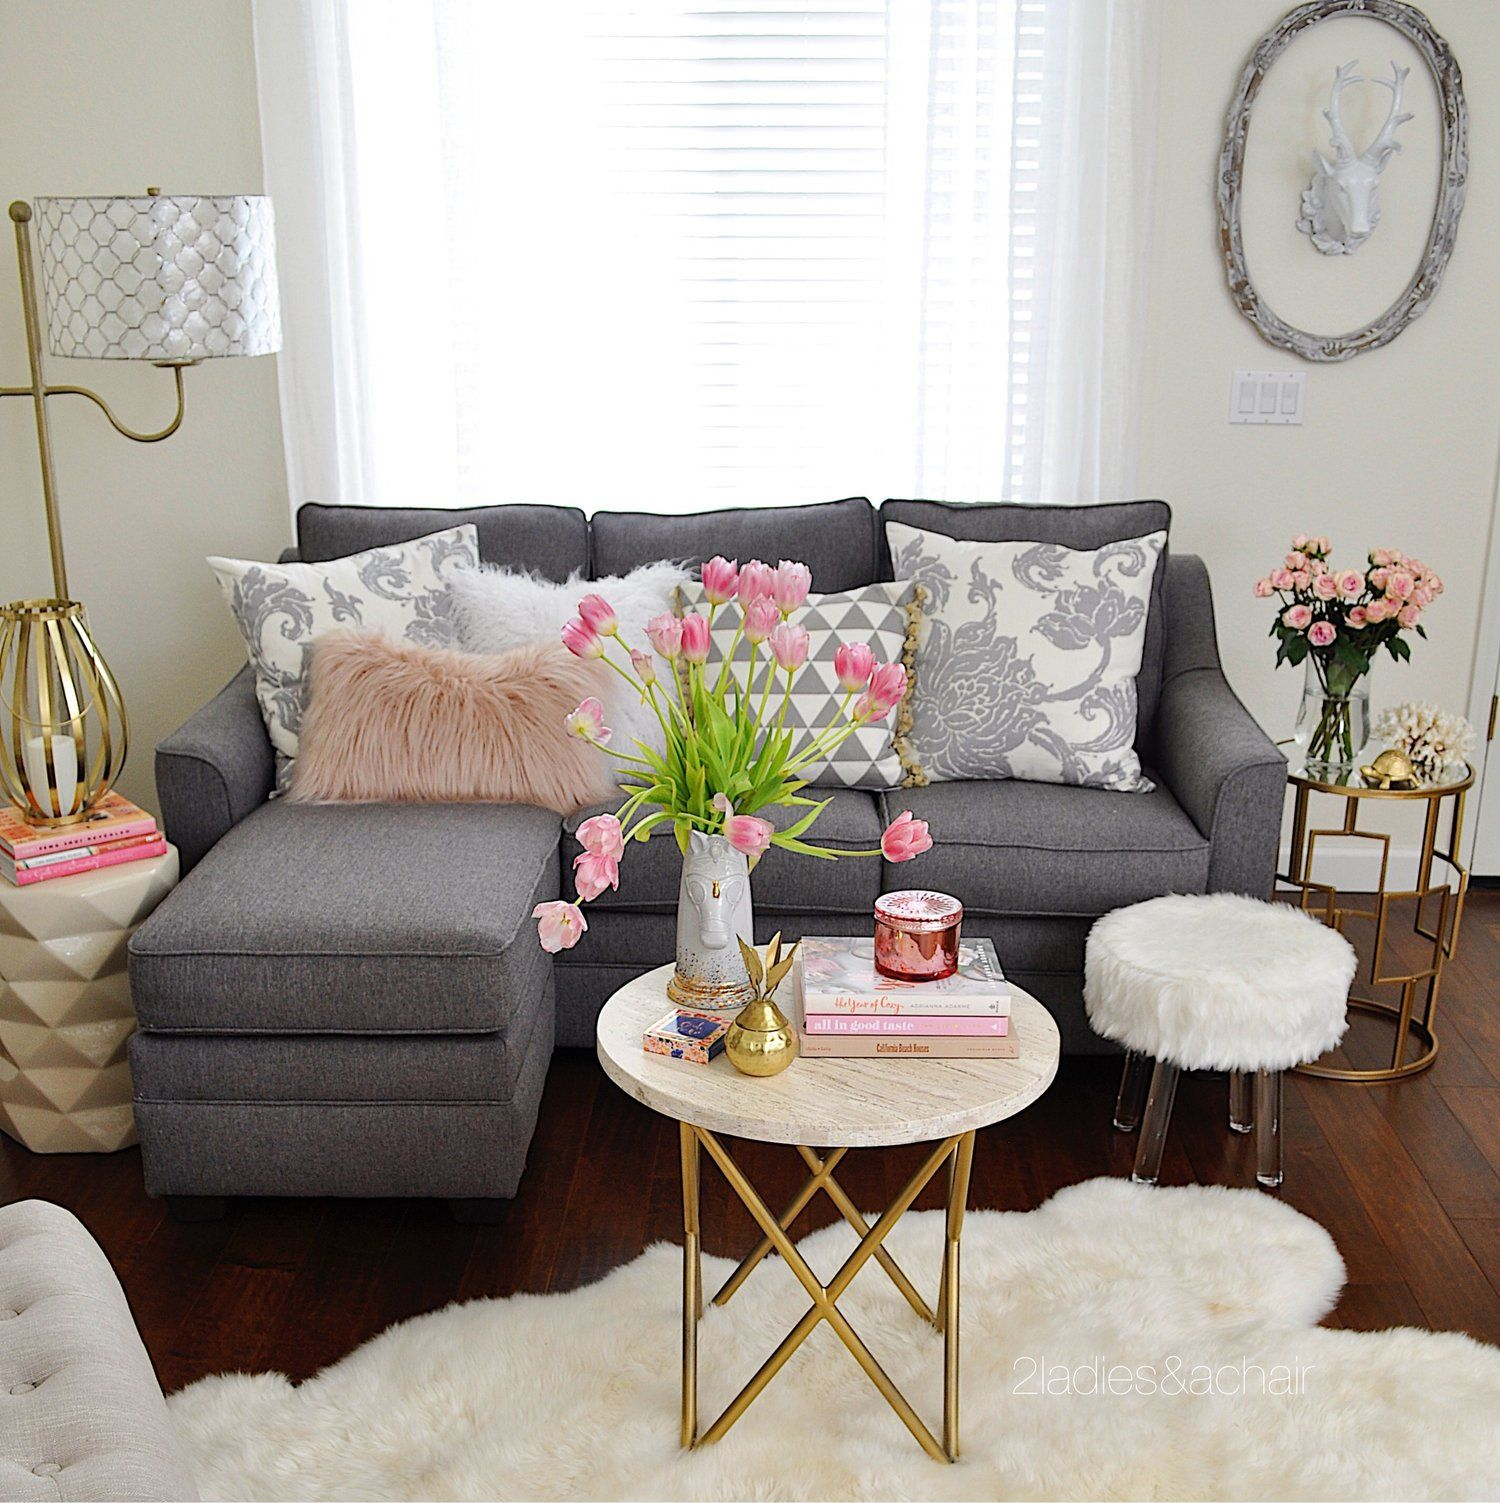 7 Living Room Ideas For People Living In Small Apartments: 14 Ideas To Style Your Home For Spring